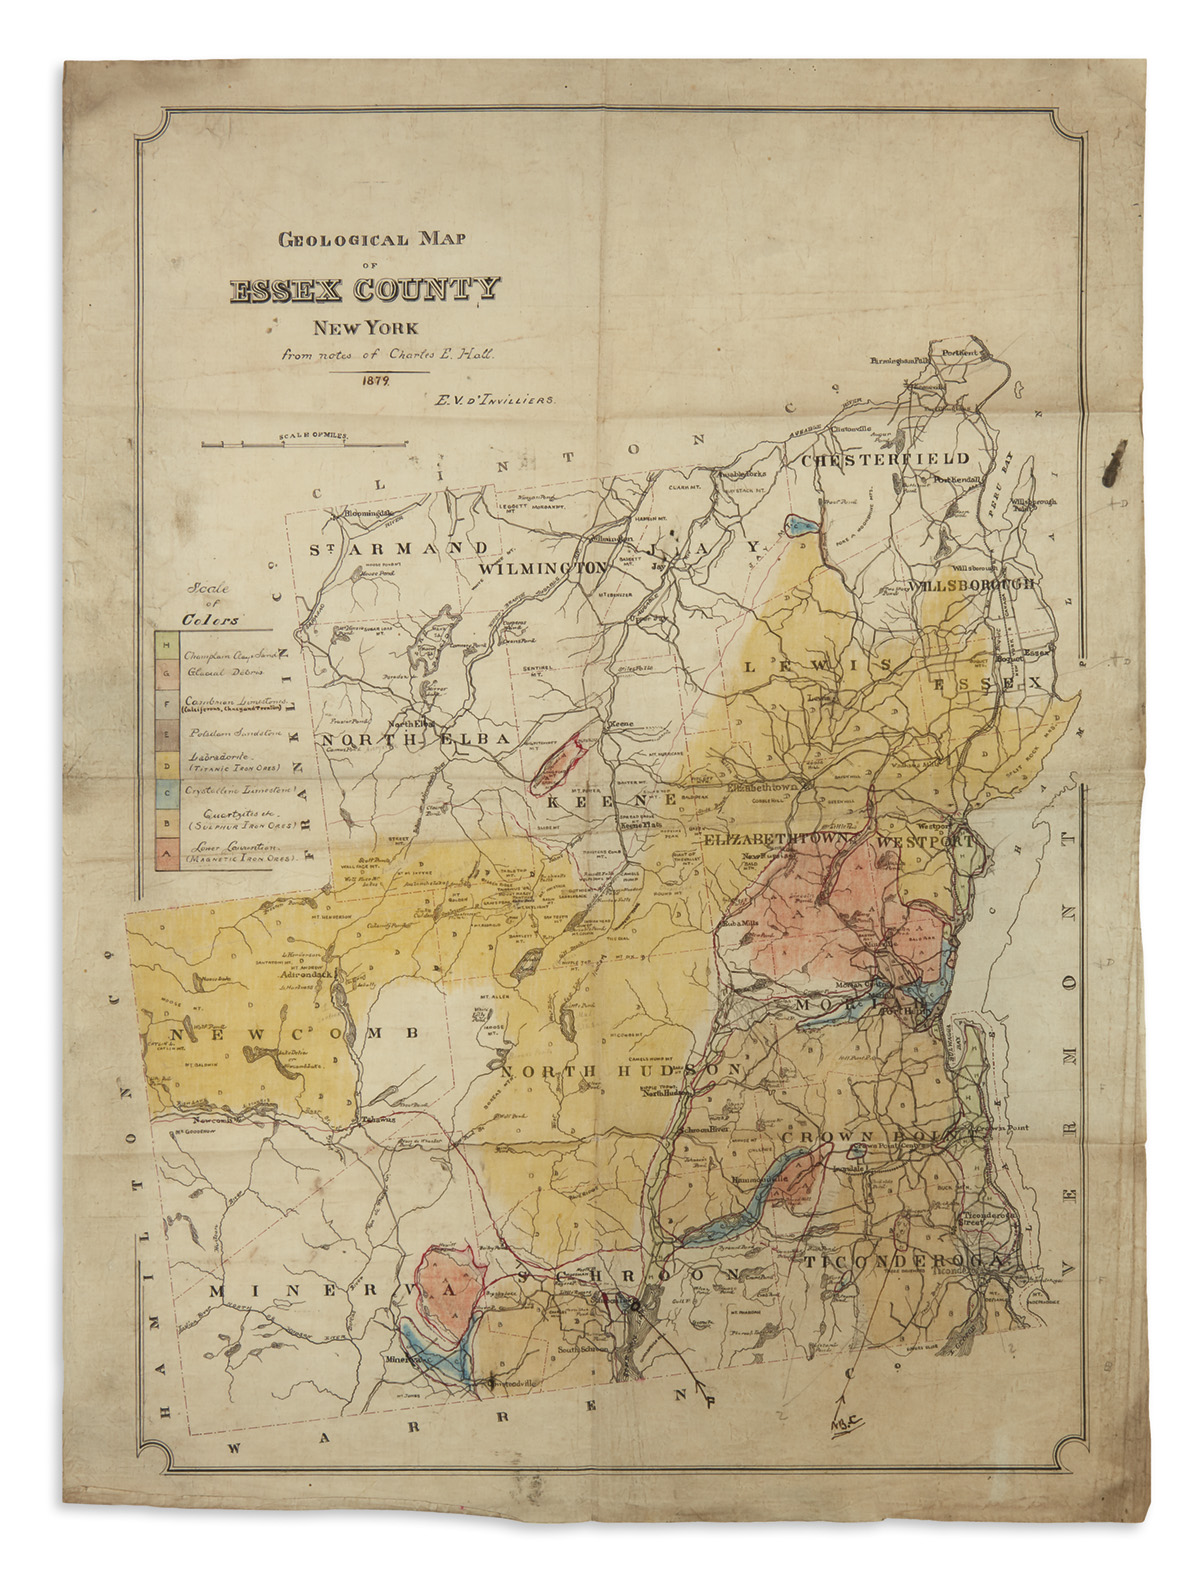 (NEW-YORK)-Hall-Charles-E;-and-dInvilliers-E[dward]-V[incent